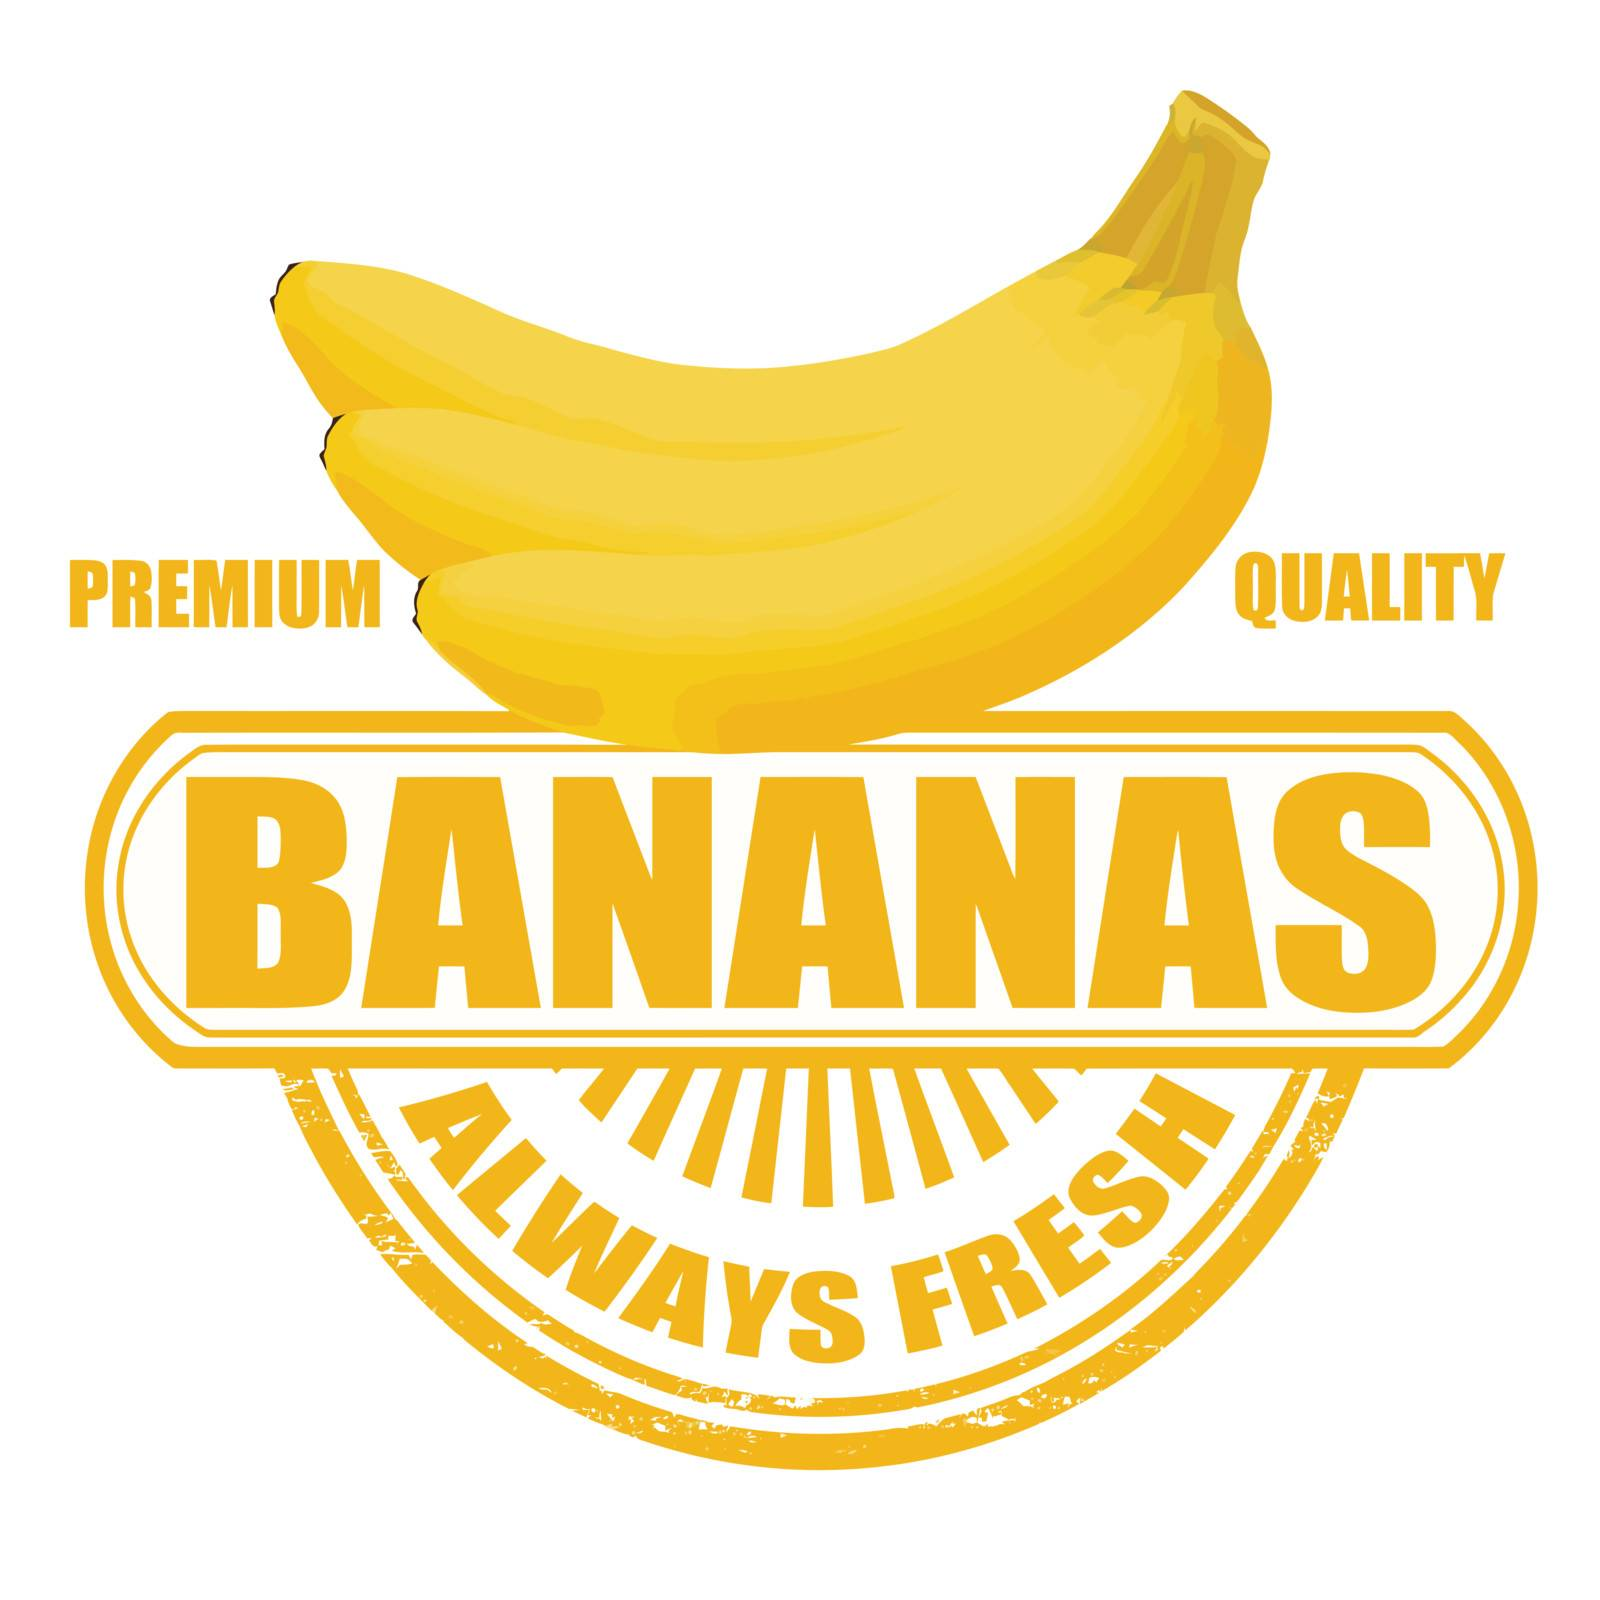 Grunge rubber stamp with bananas and the text bananas written inside, vector illustration